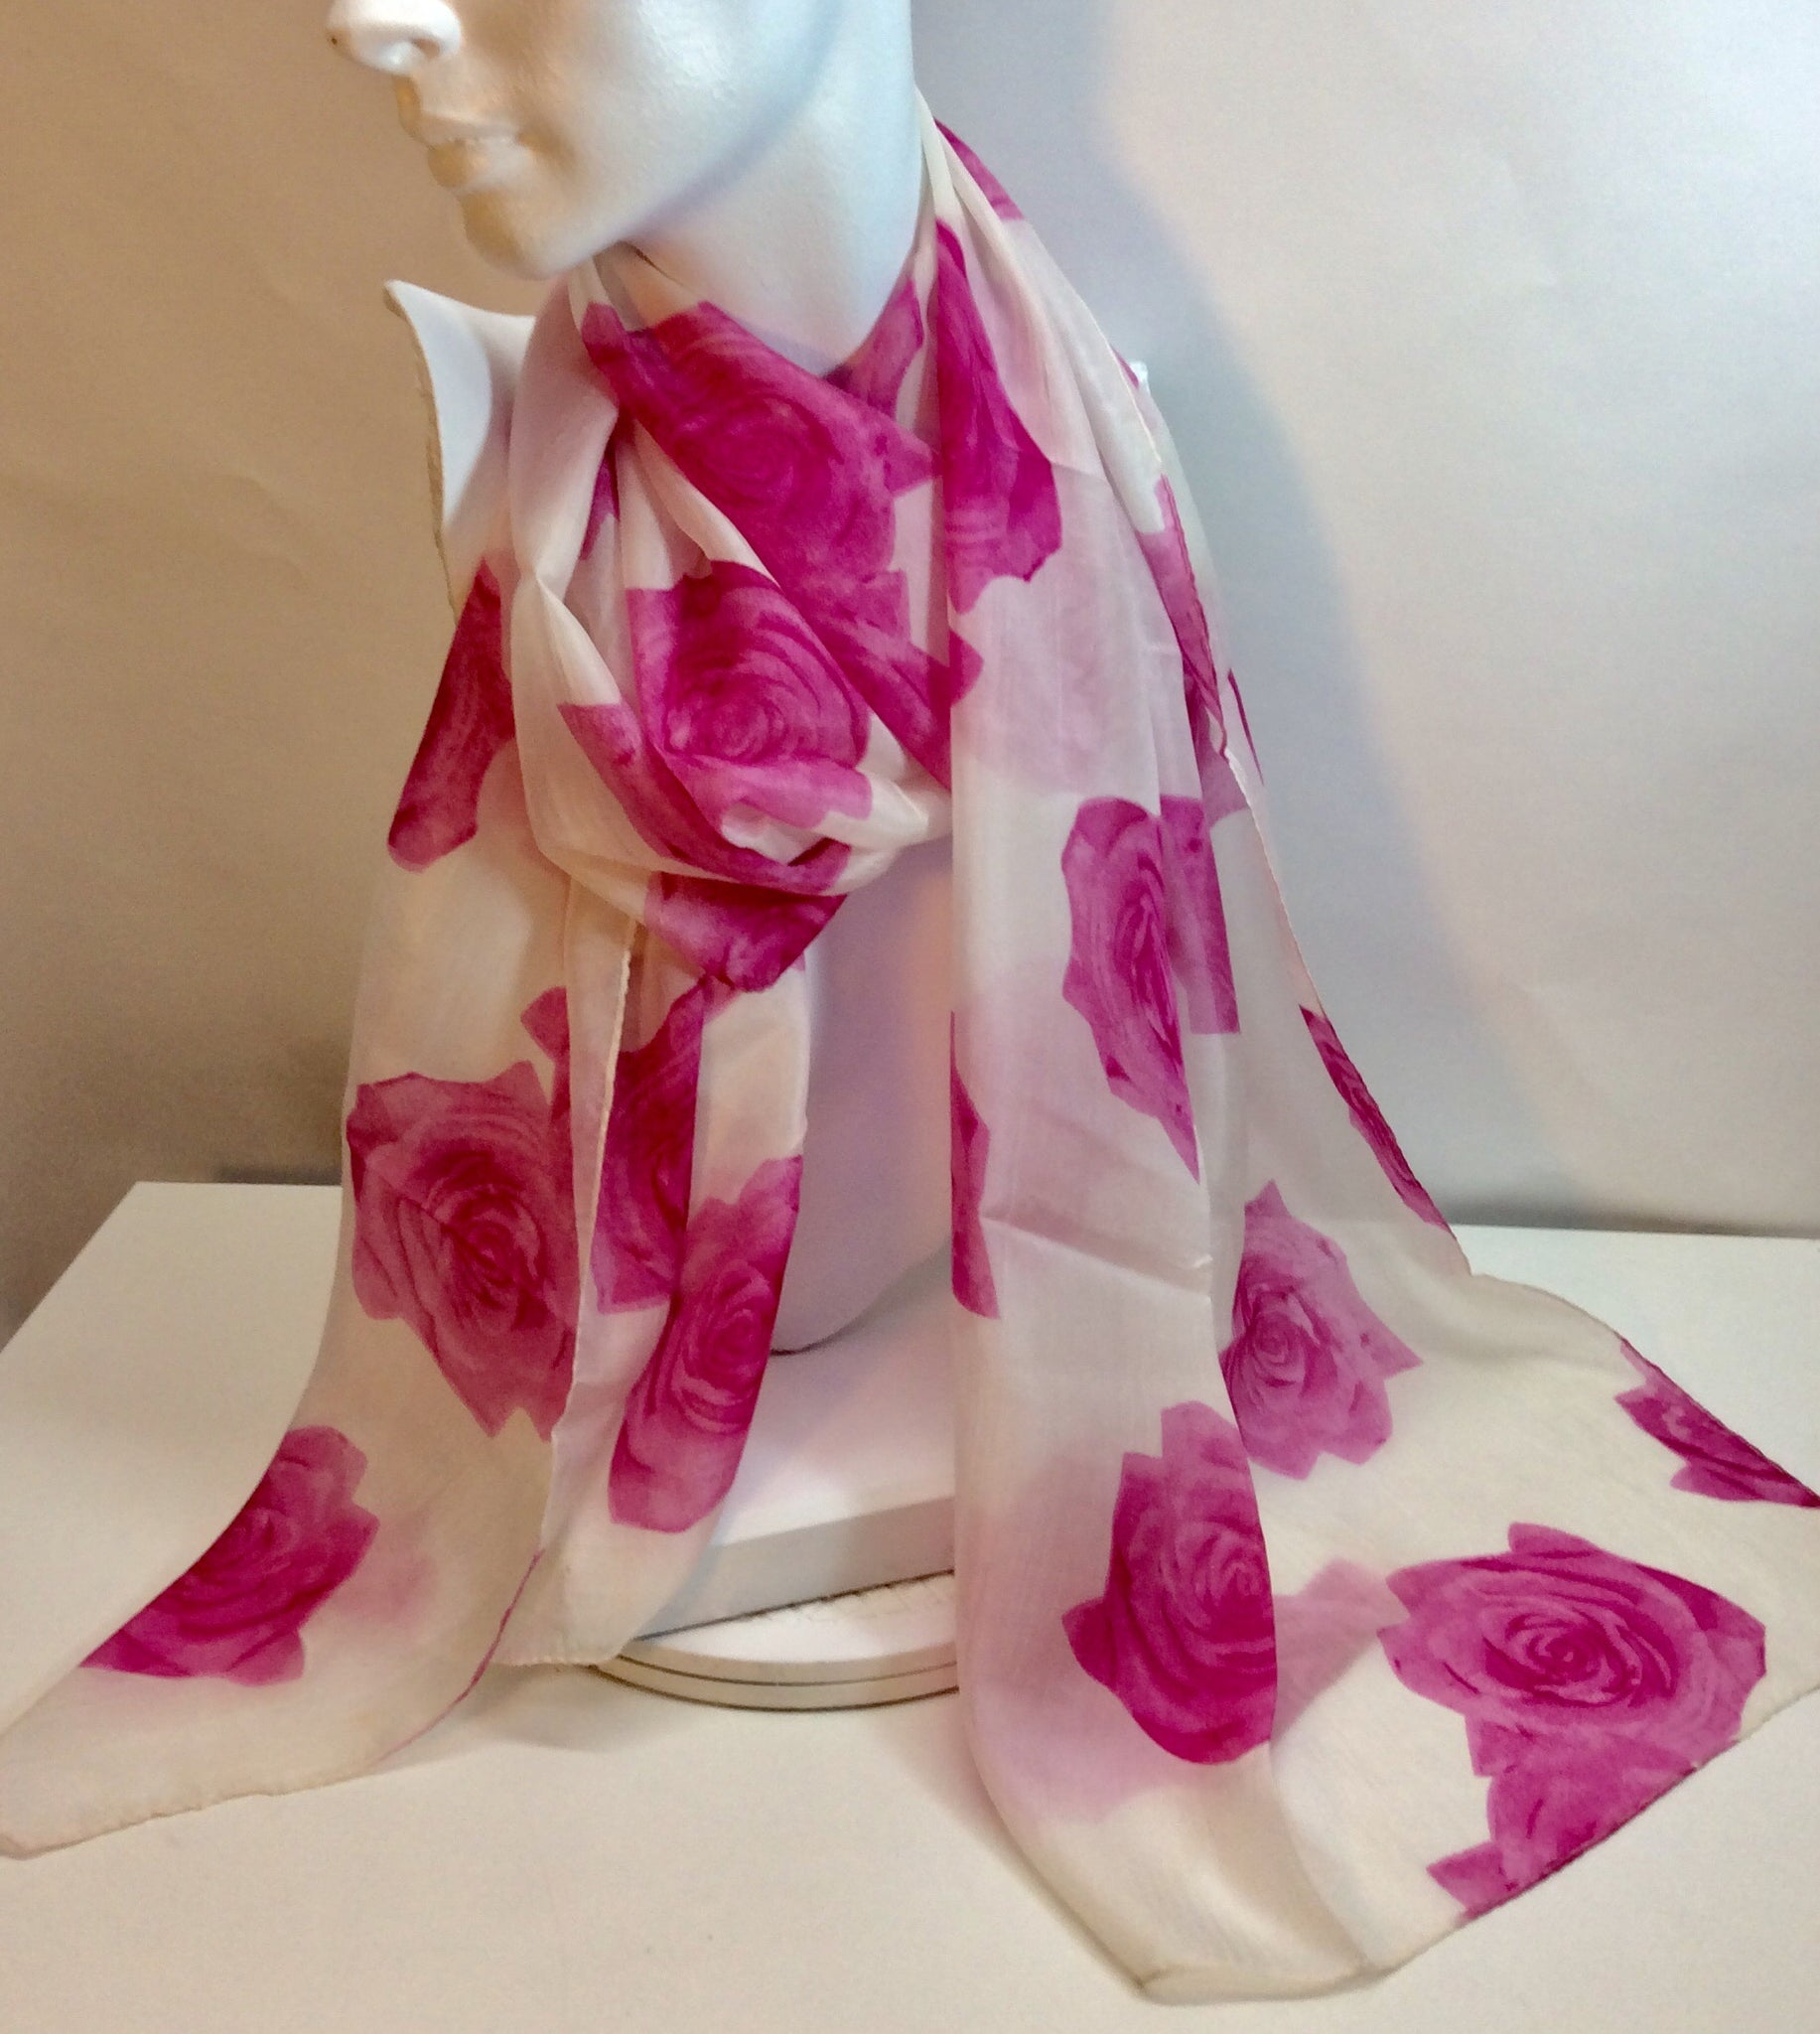 Summery pink roses feature on this silk scarf